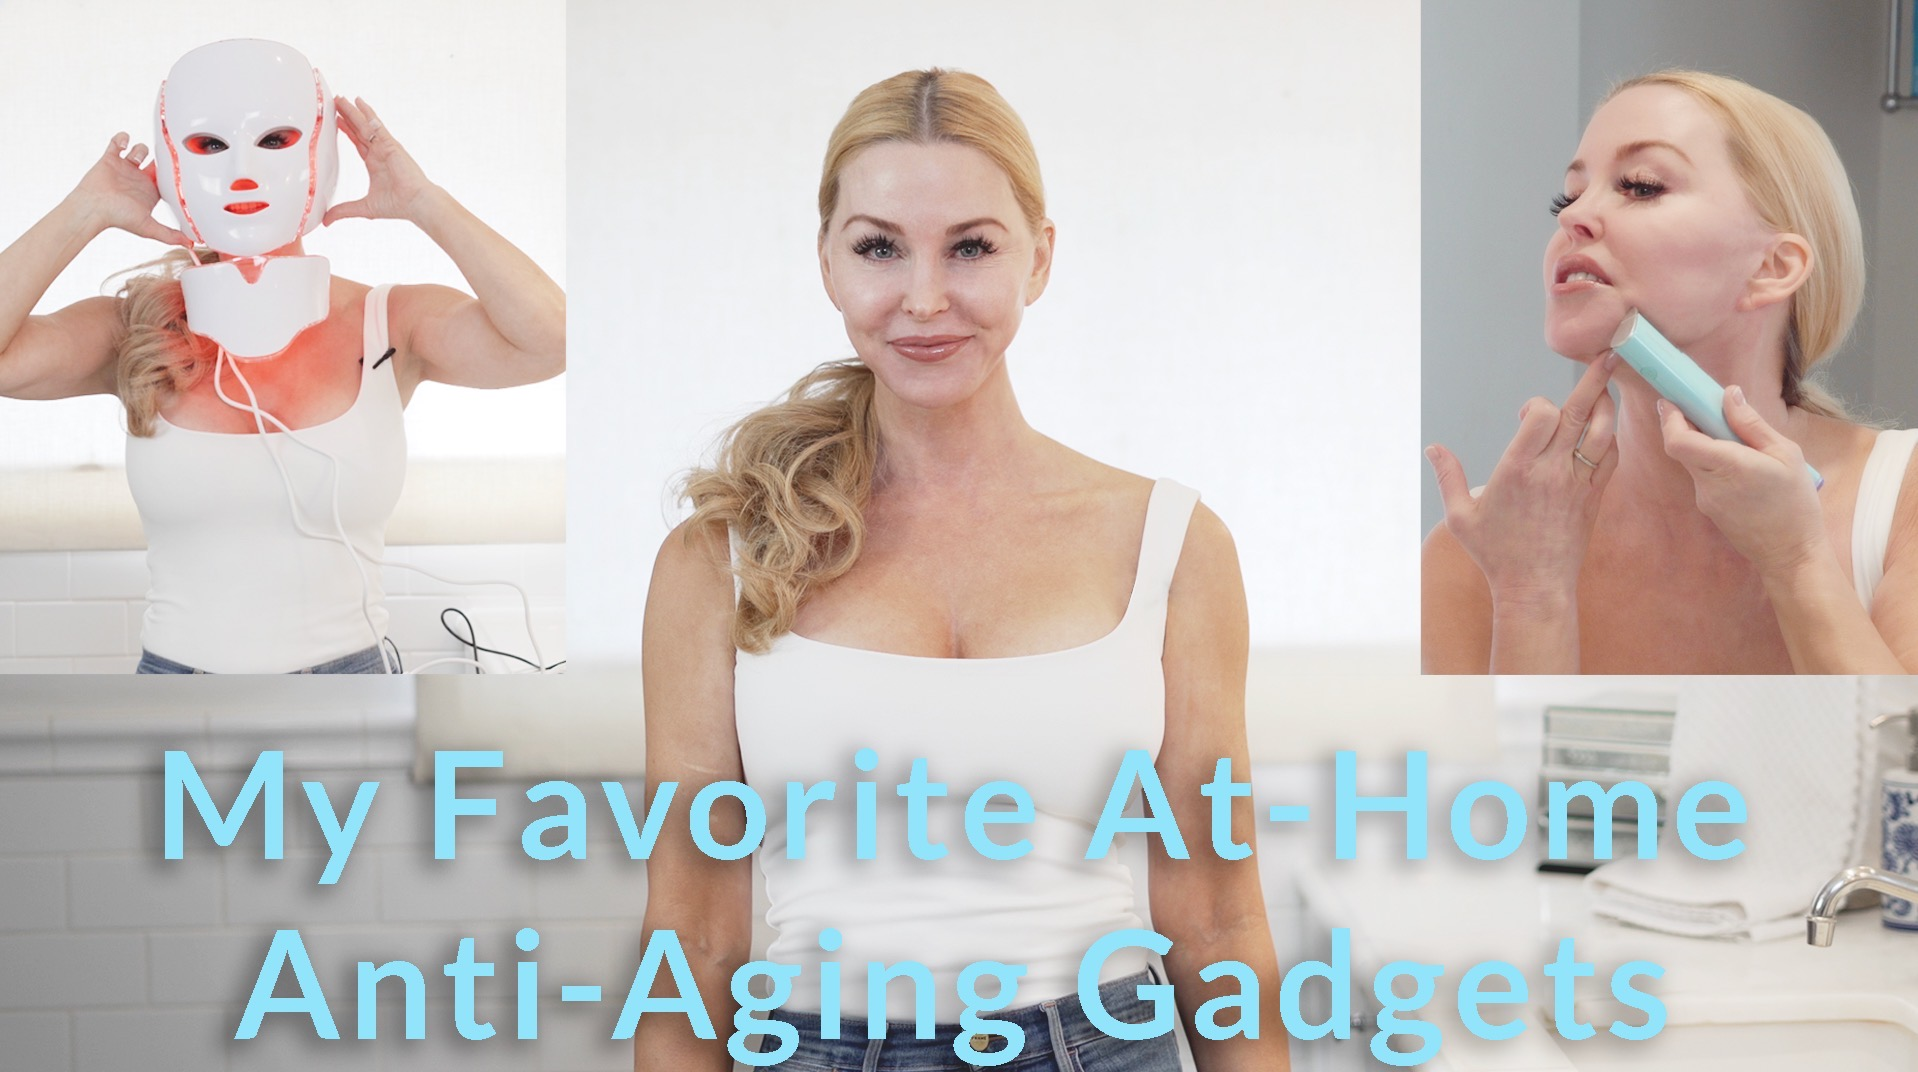 My Favorite At-Home Anti-Aging Gadgets